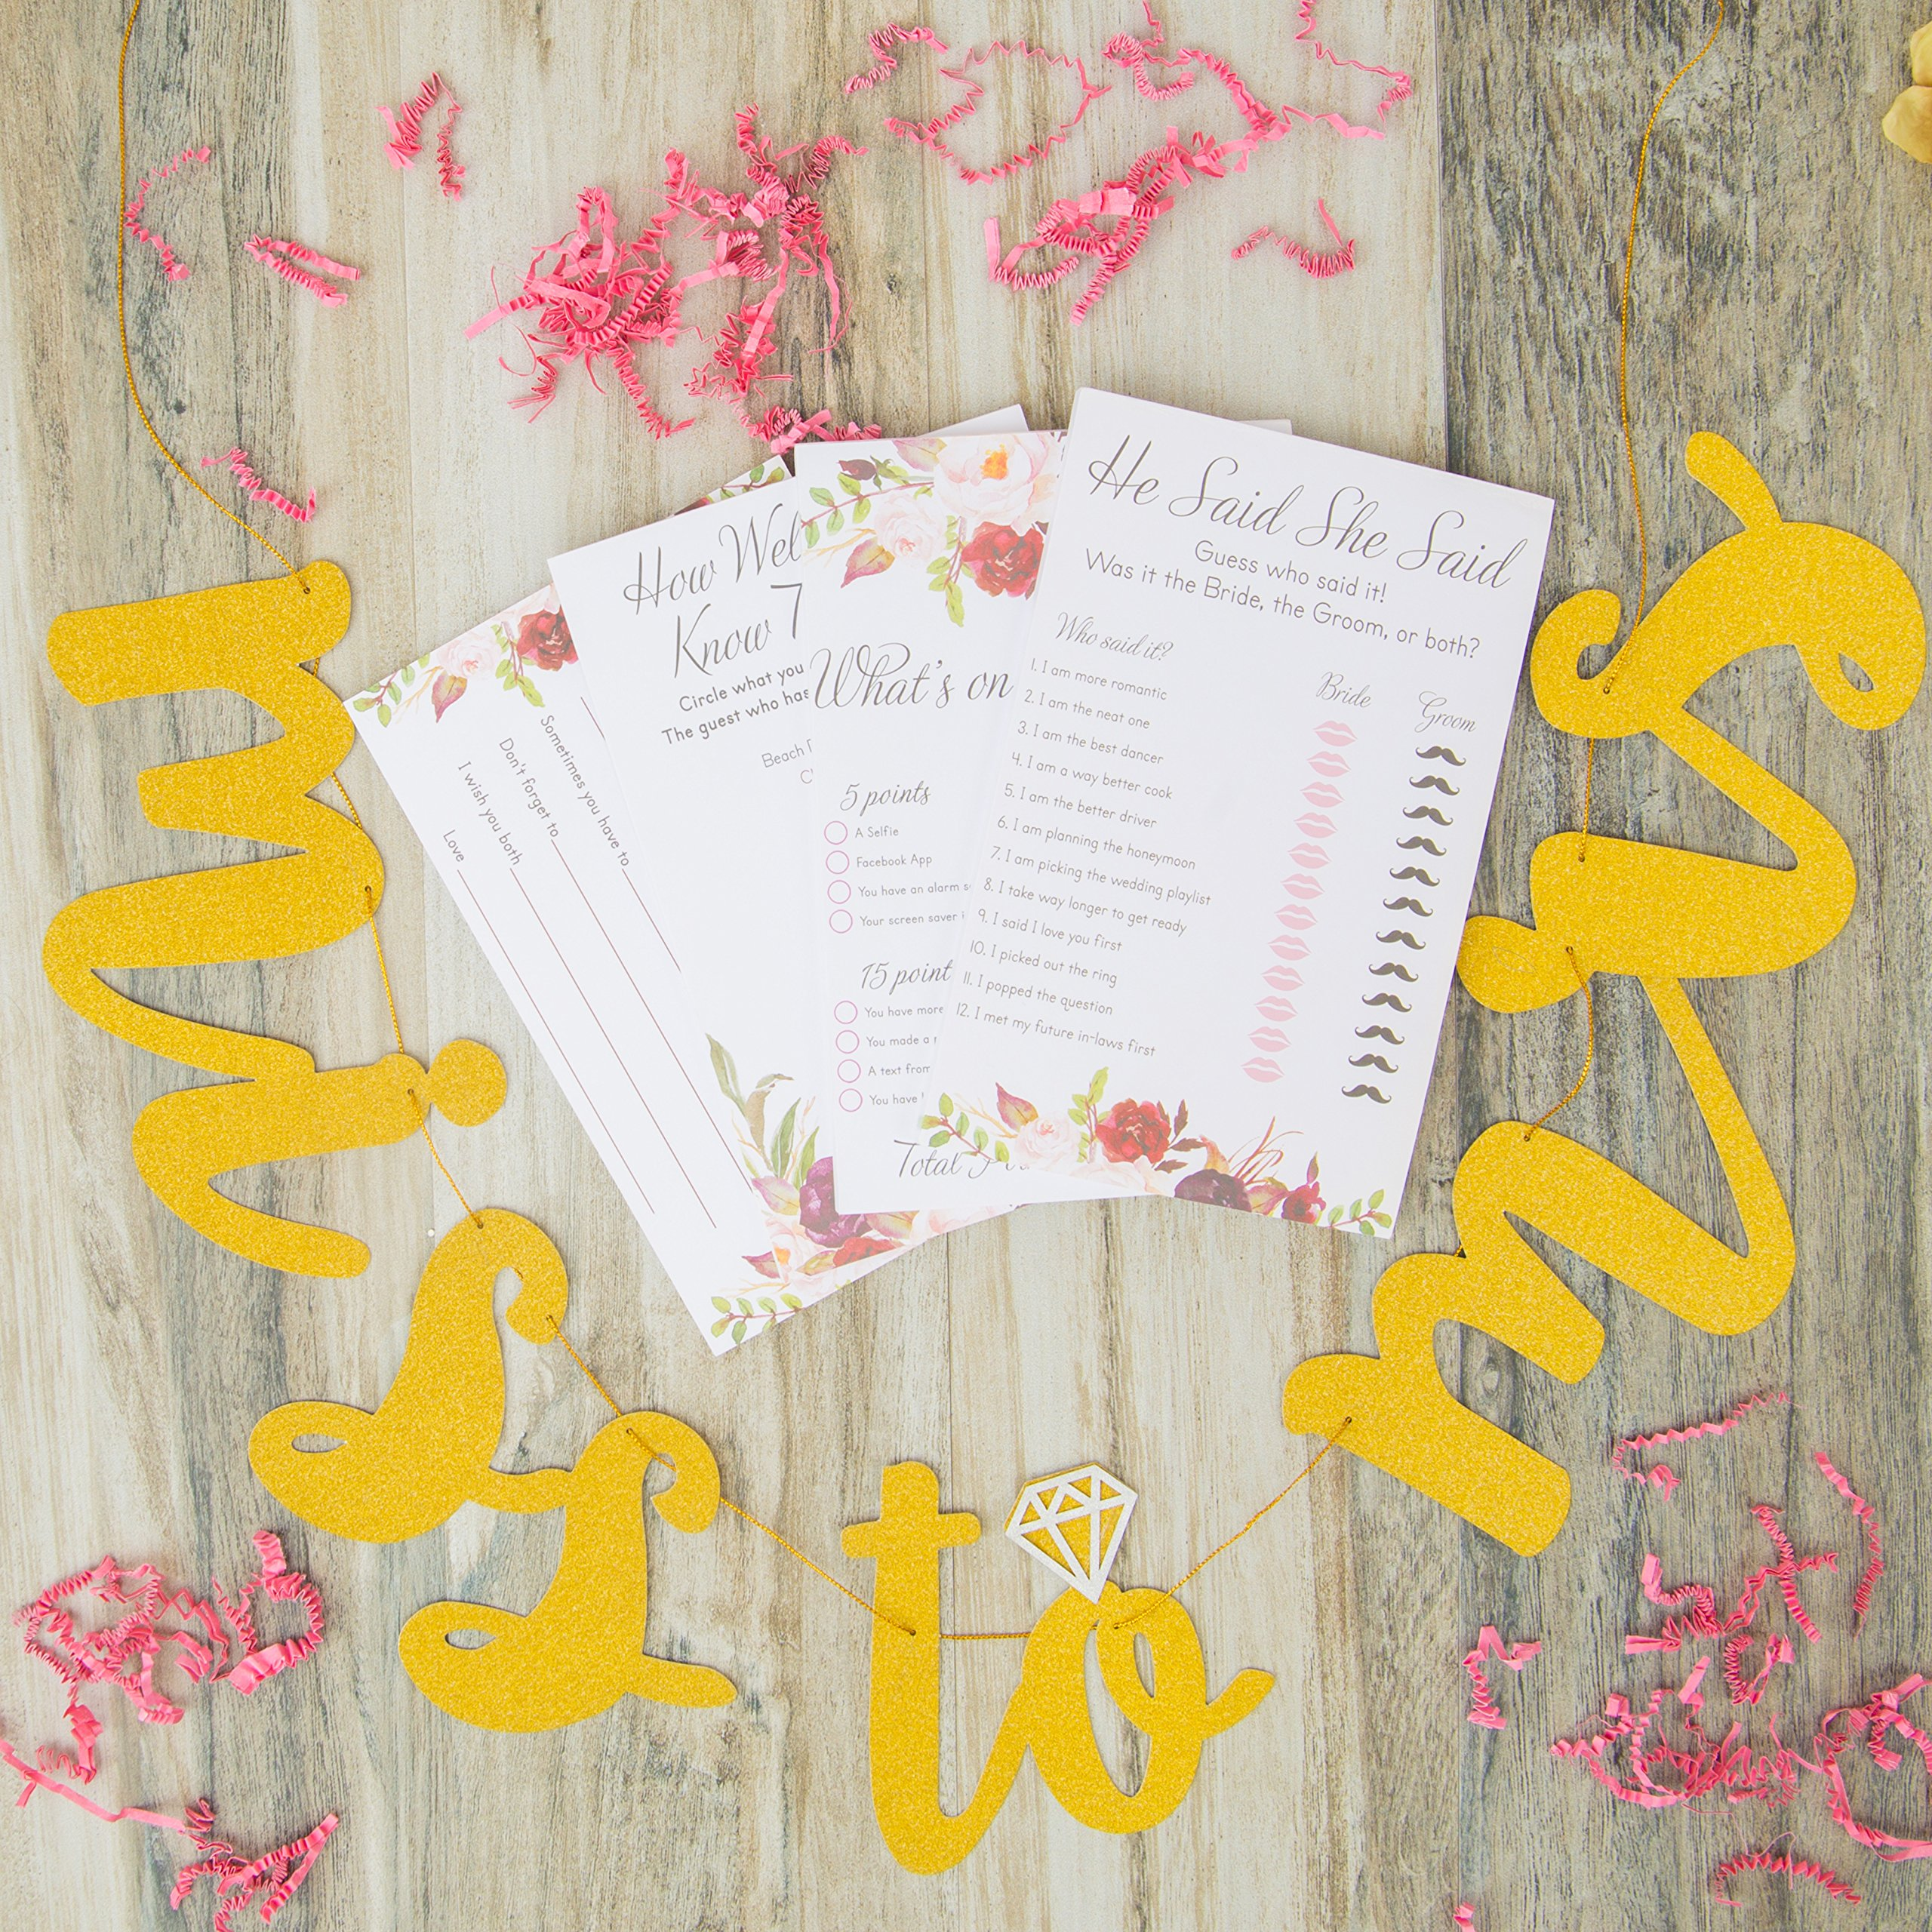 Bridal Shower Games pack with Bonus Miss to Mrs Banner (GOLD), Dots and Wedding Advice Cards | 3 Games - What's On Your Phone, He Said She Said, How Well Do You Know The Bride(50 Sheets each) by Planet Mango (Image #2)